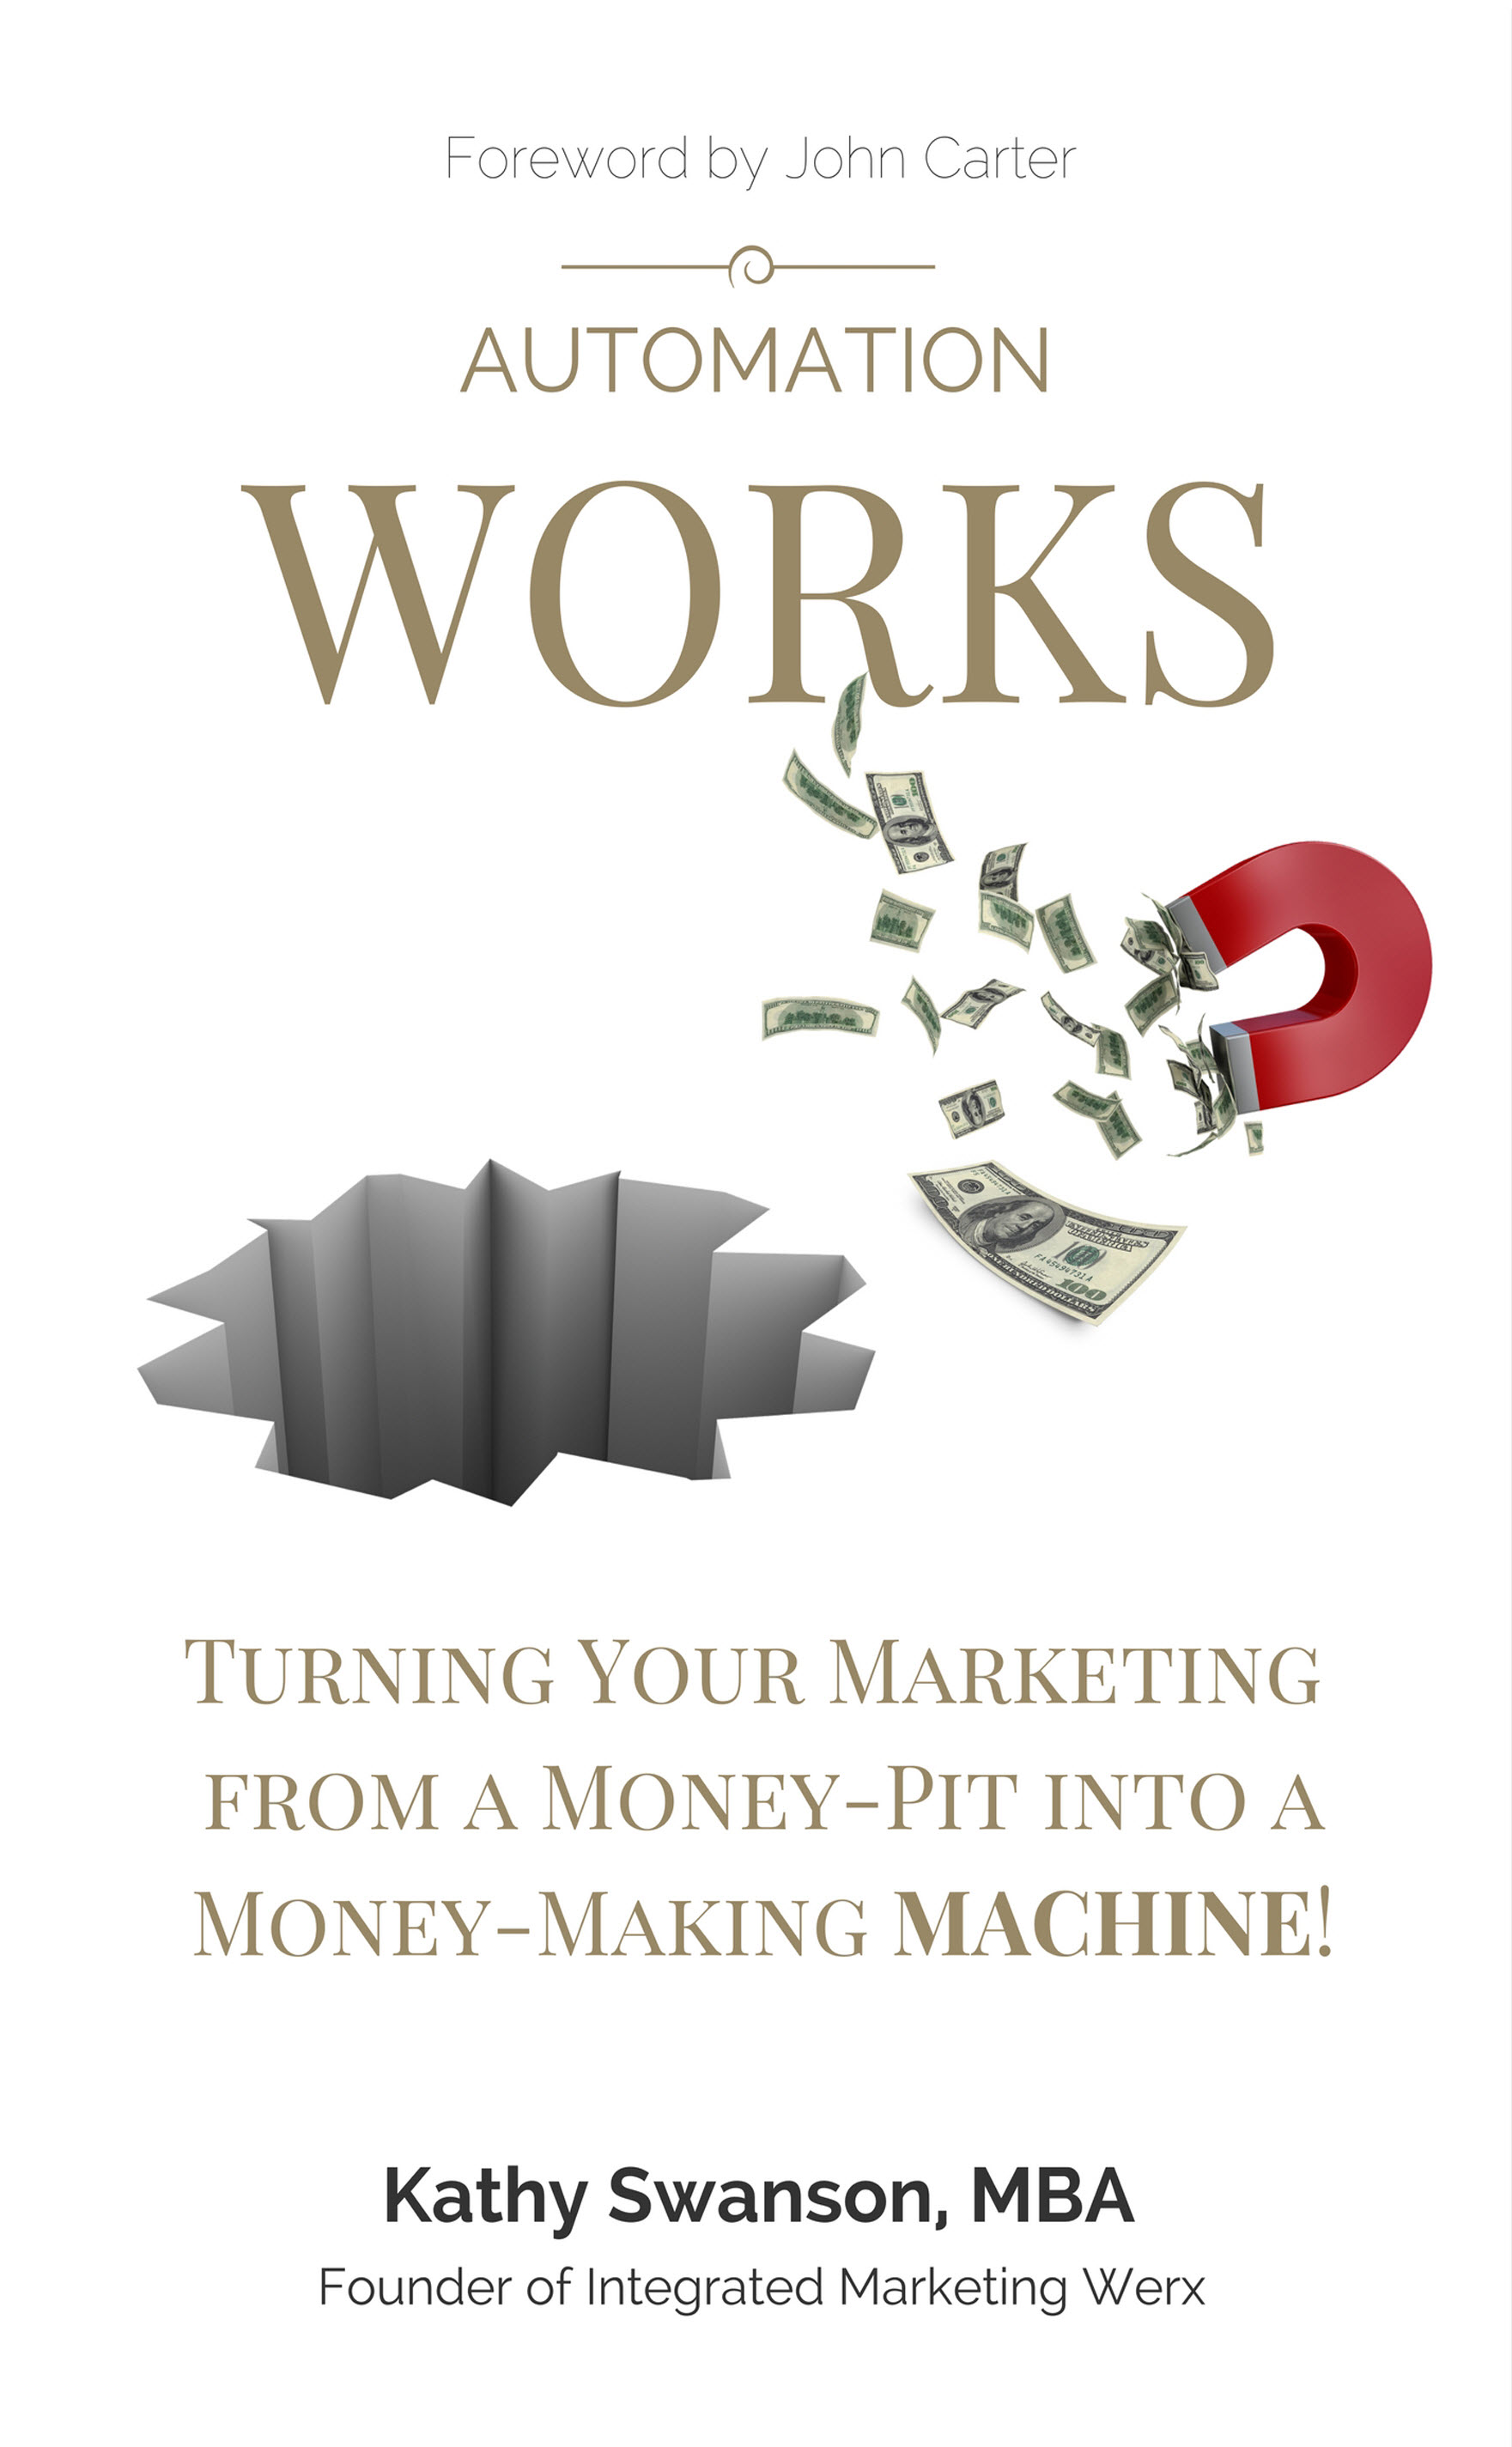 Automation Works | Author - Kathy Swanson | Integrated Marketing Werx